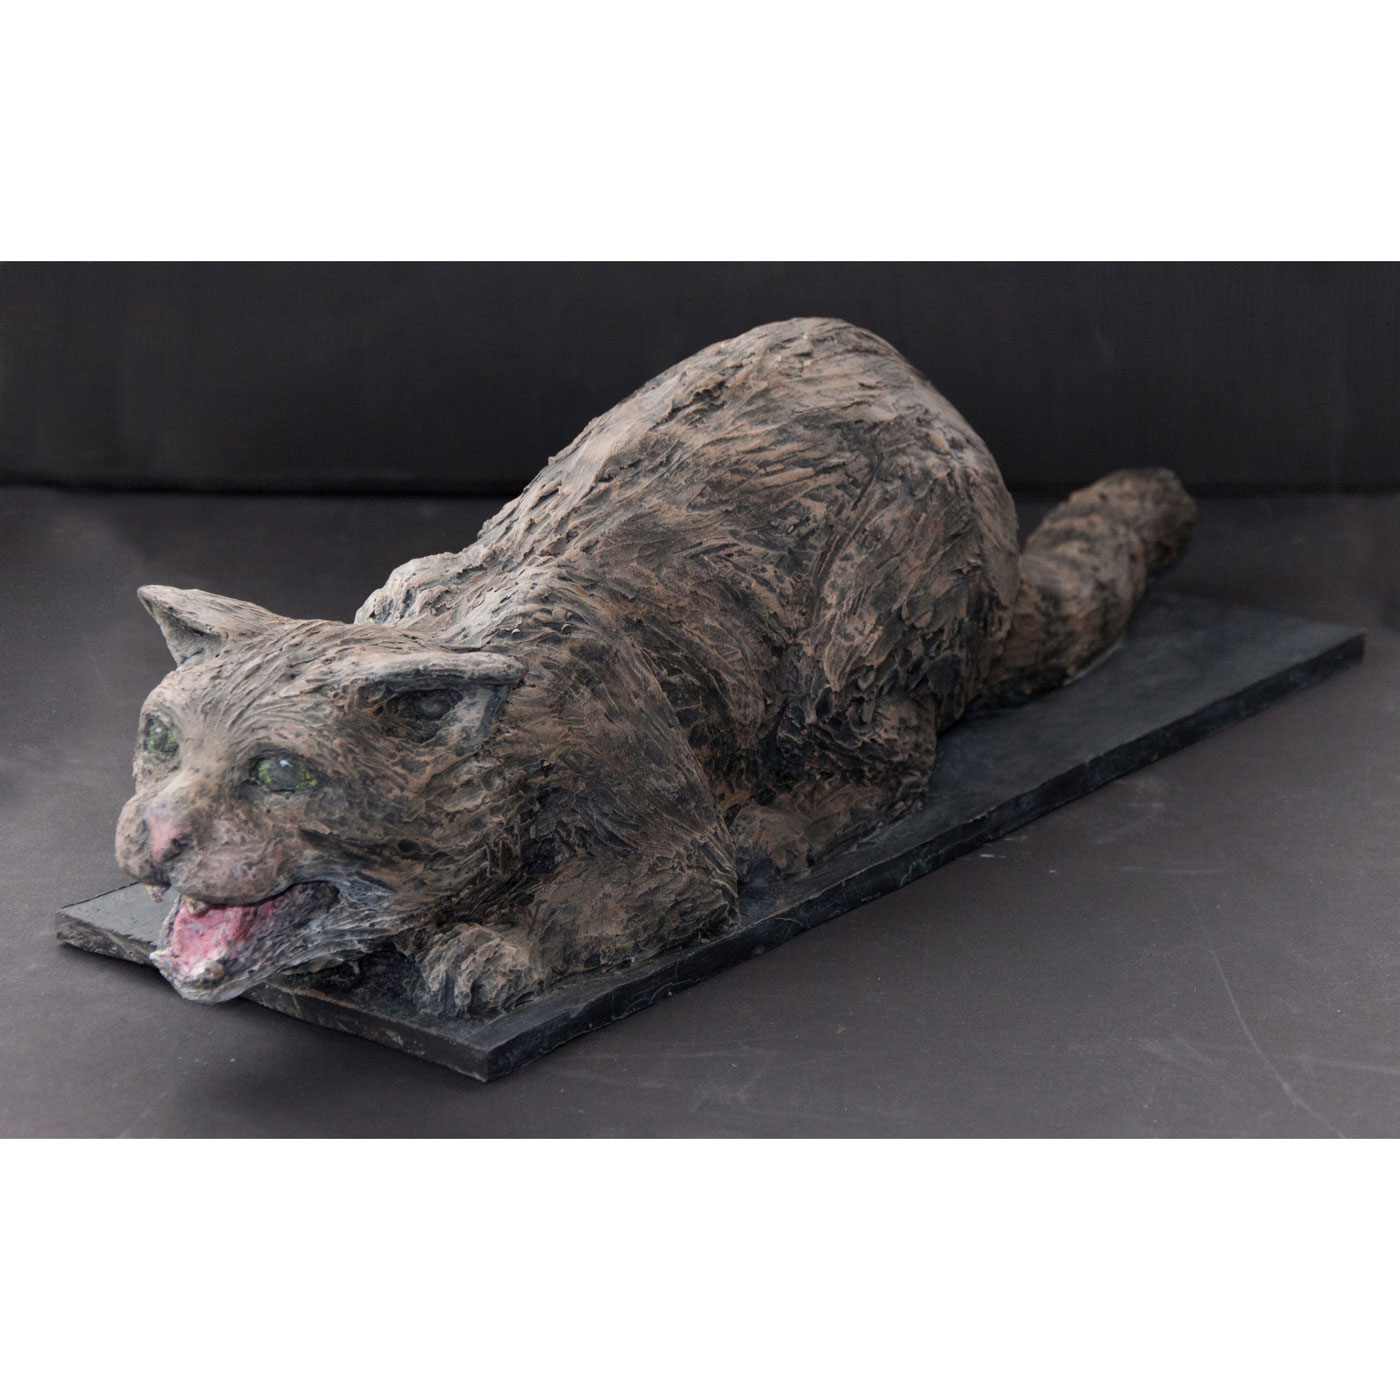 EUROPEAN WILDCAT,  © 2014, acrylic cast, molded in wax, 55 x 20 x 15 cm